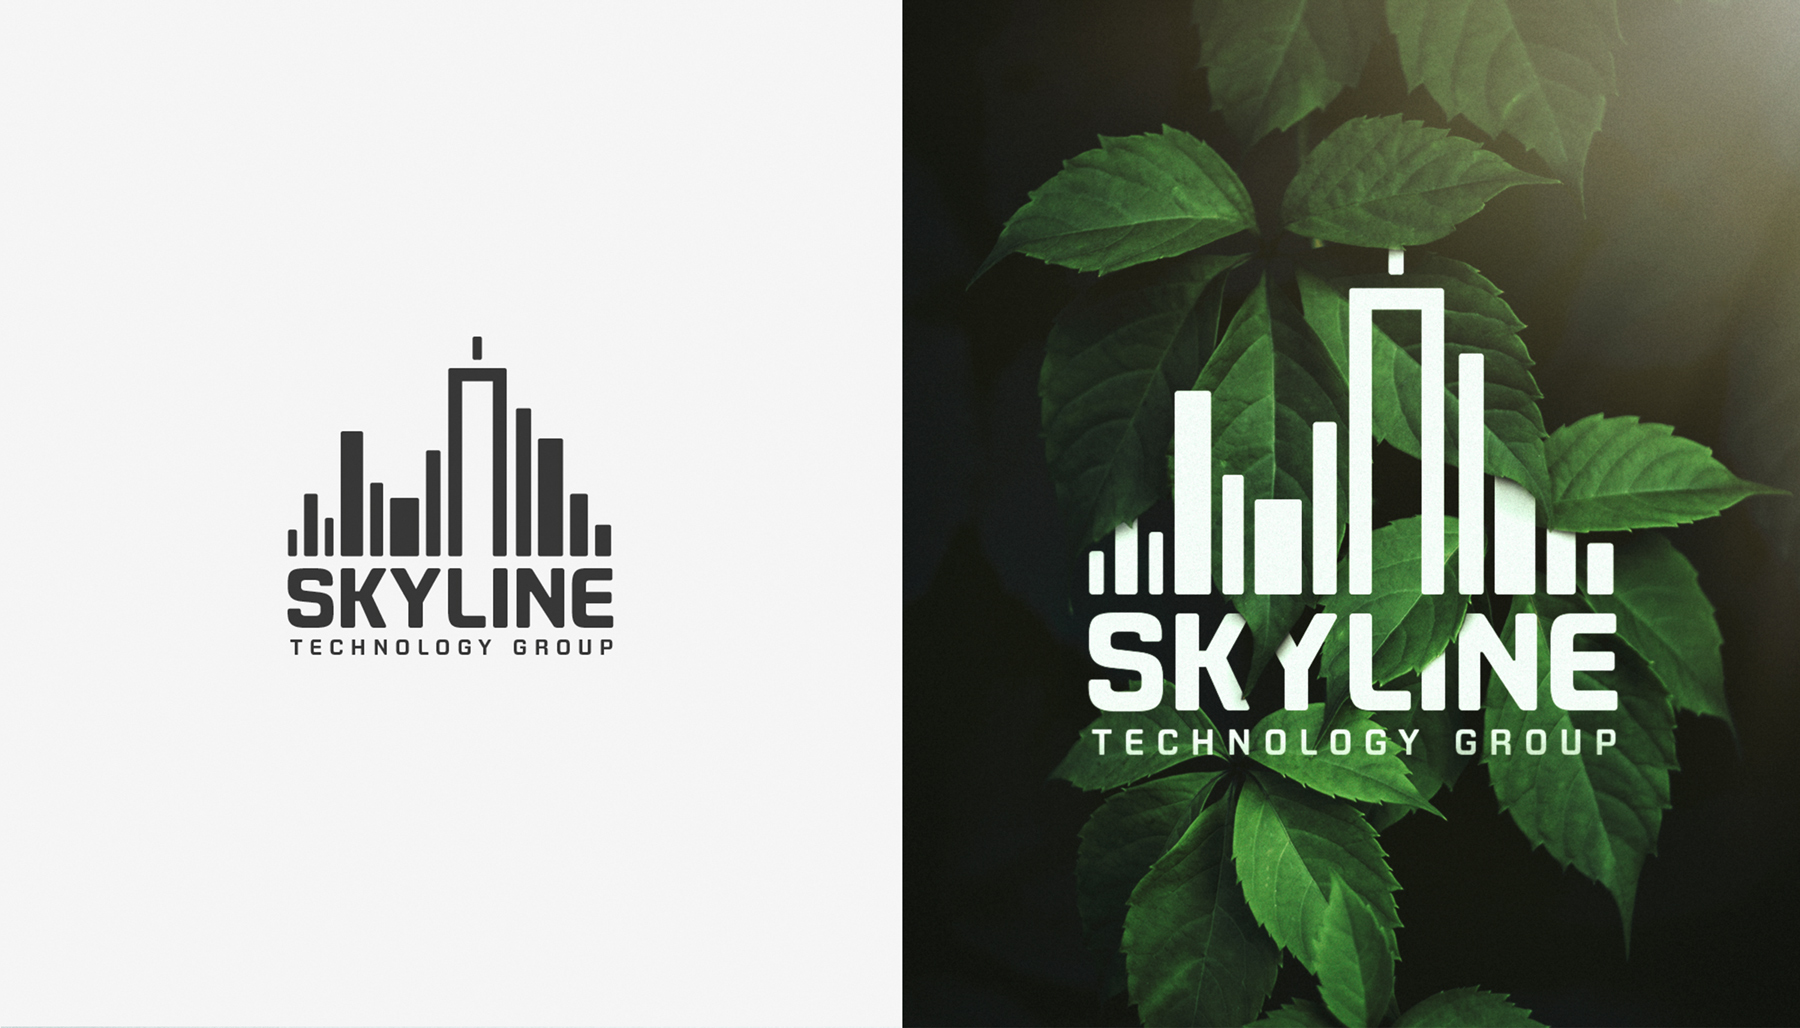 Paul_Molina_Graphic-Design_Skyline_Logo